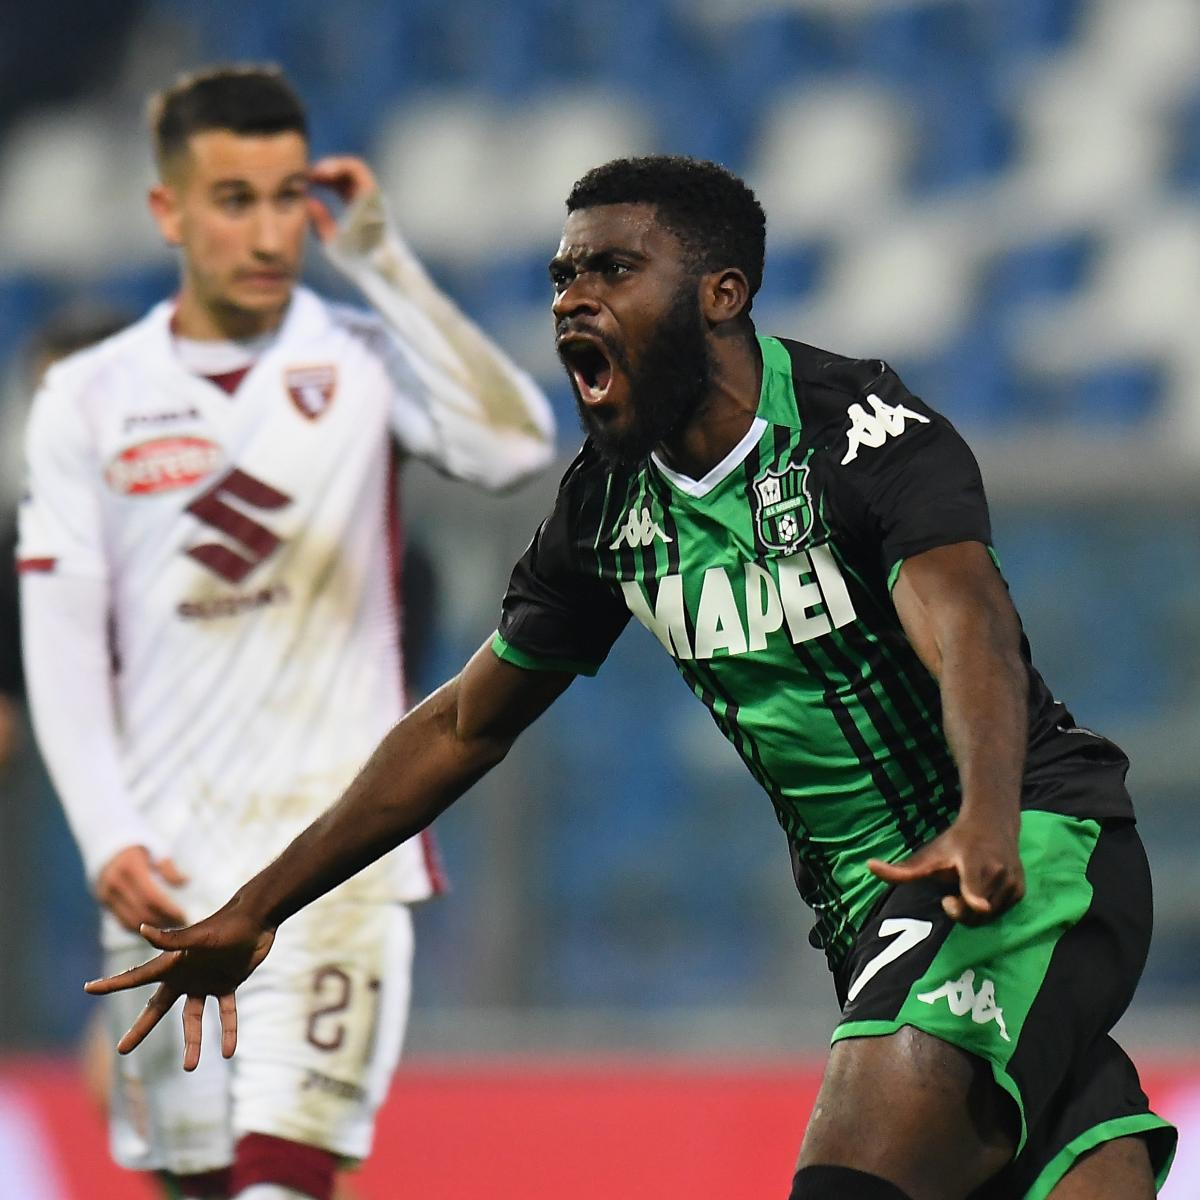 Jeremie Boga's Agent Says Chelsea Still Monitoring Player 'With Great Interest'